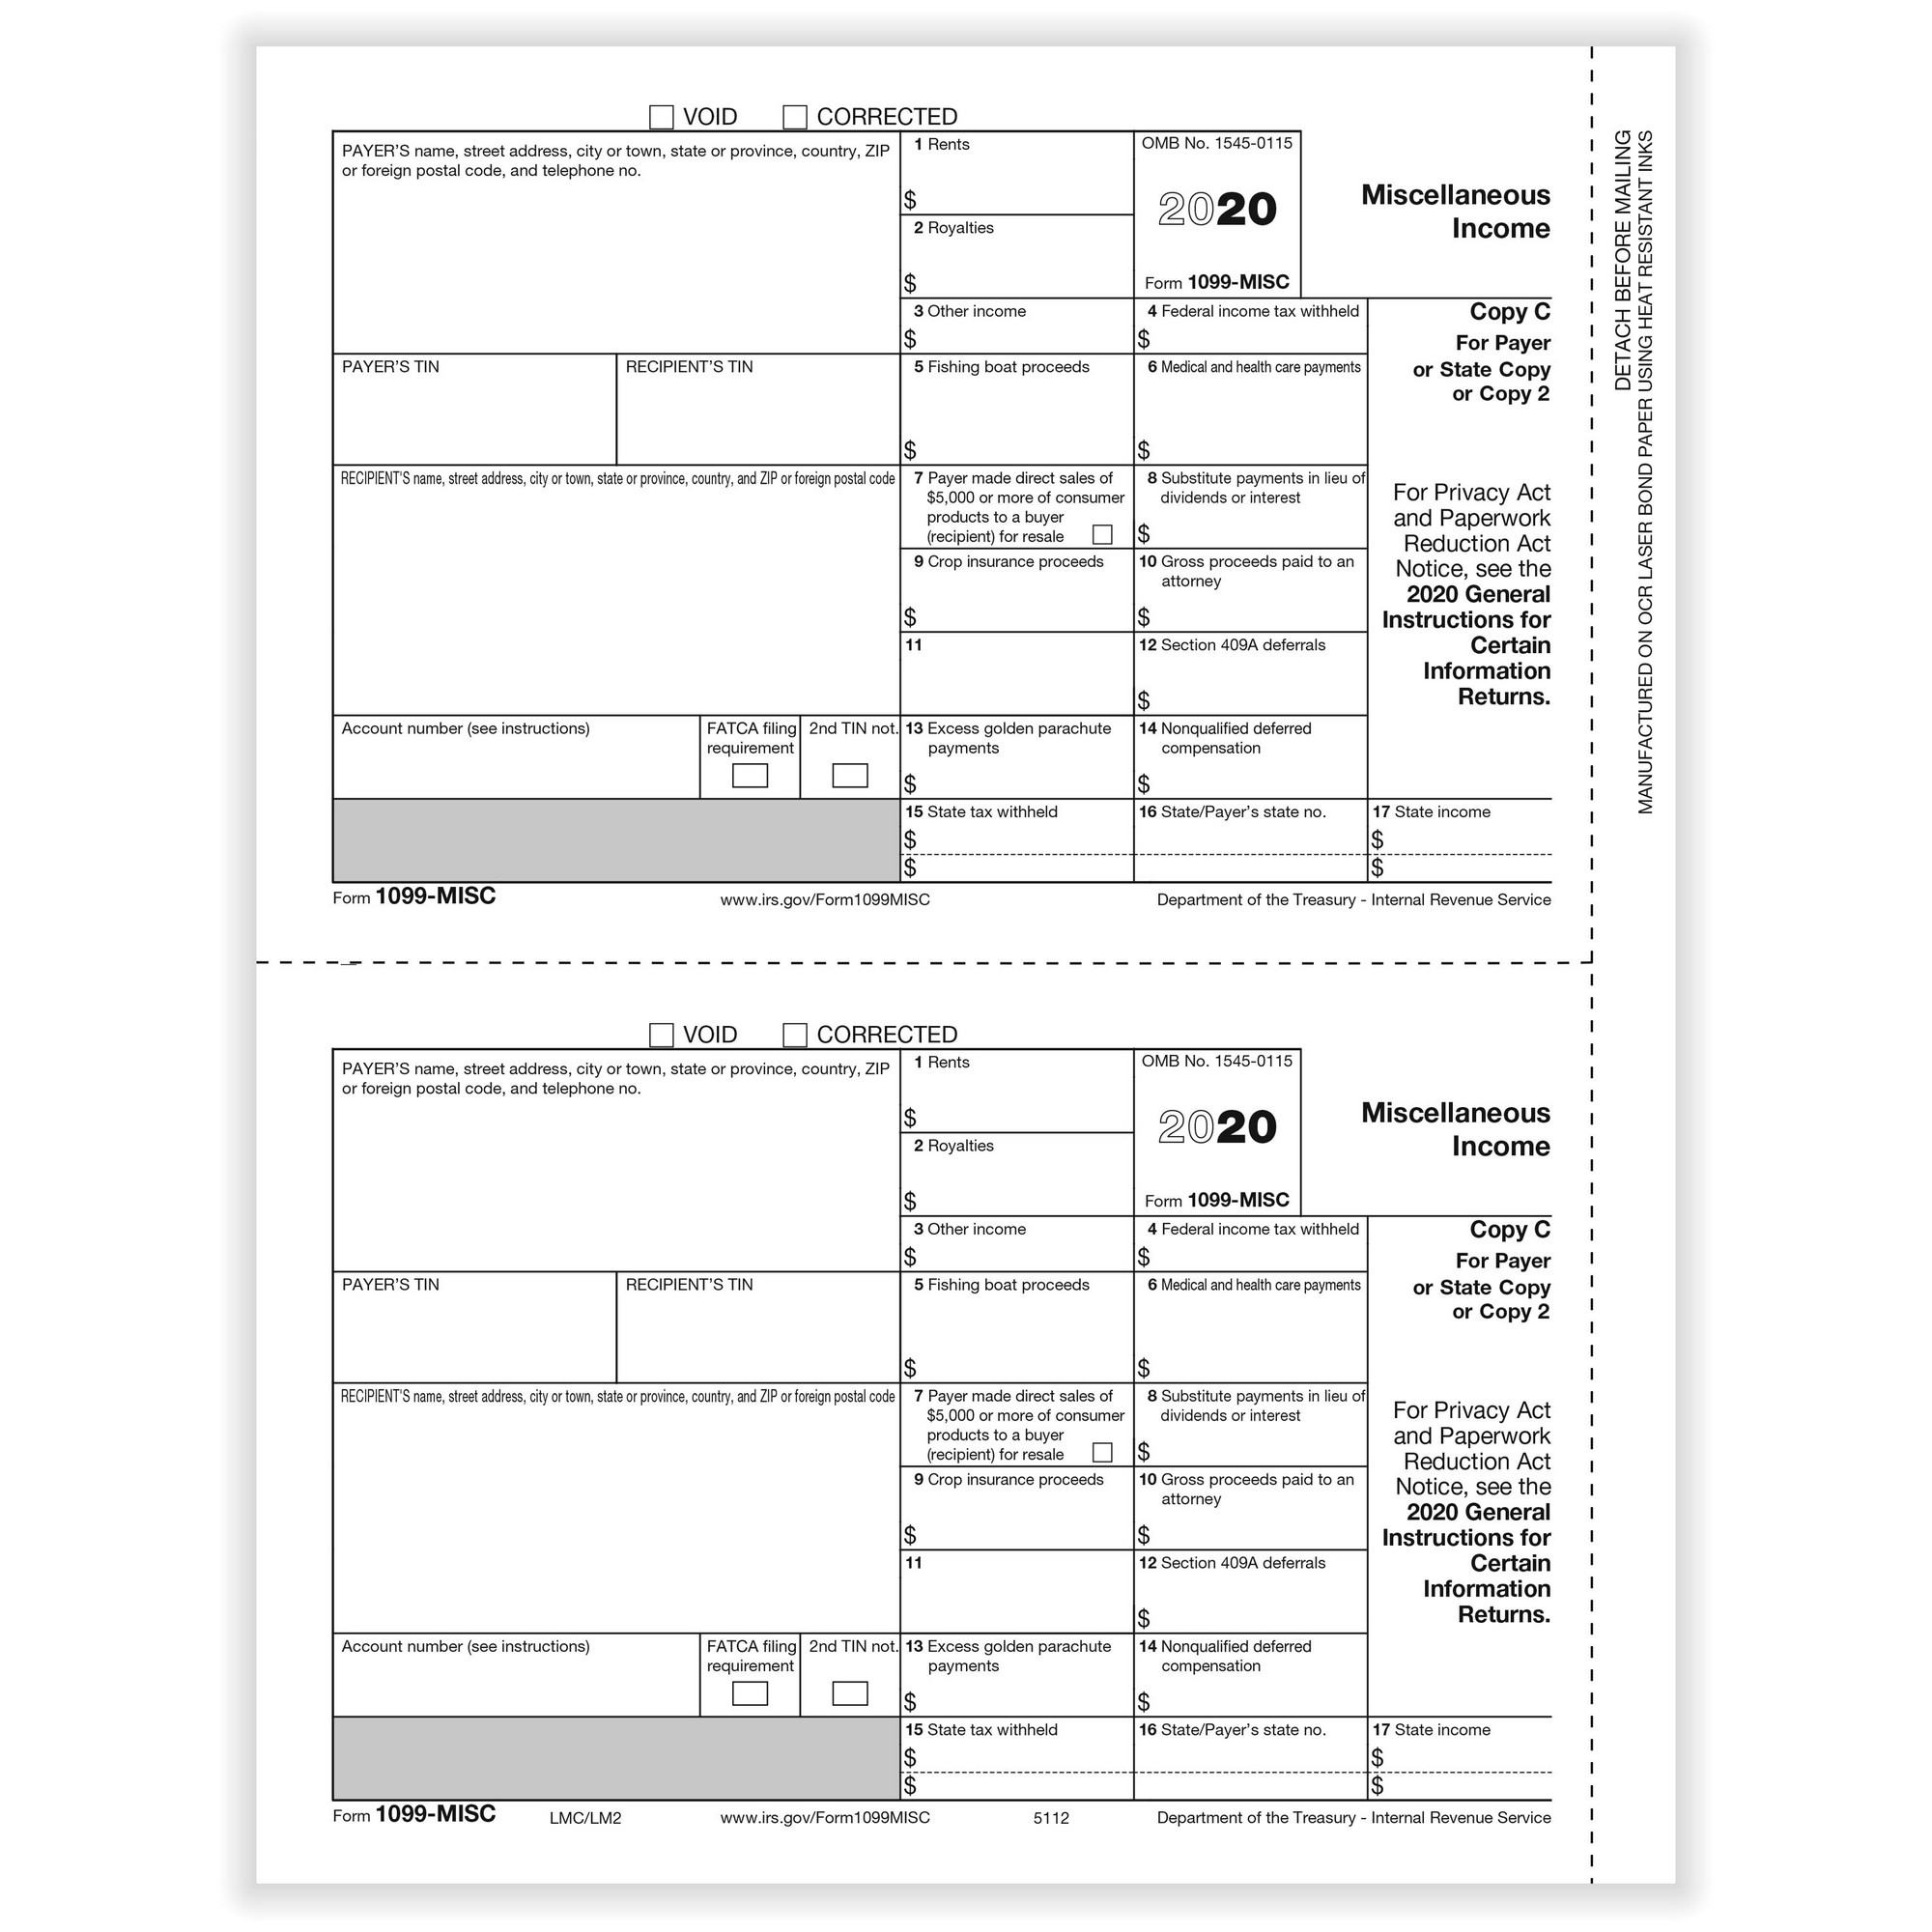 Misc Miscellaneous Payer State Copy C Cut Sheet